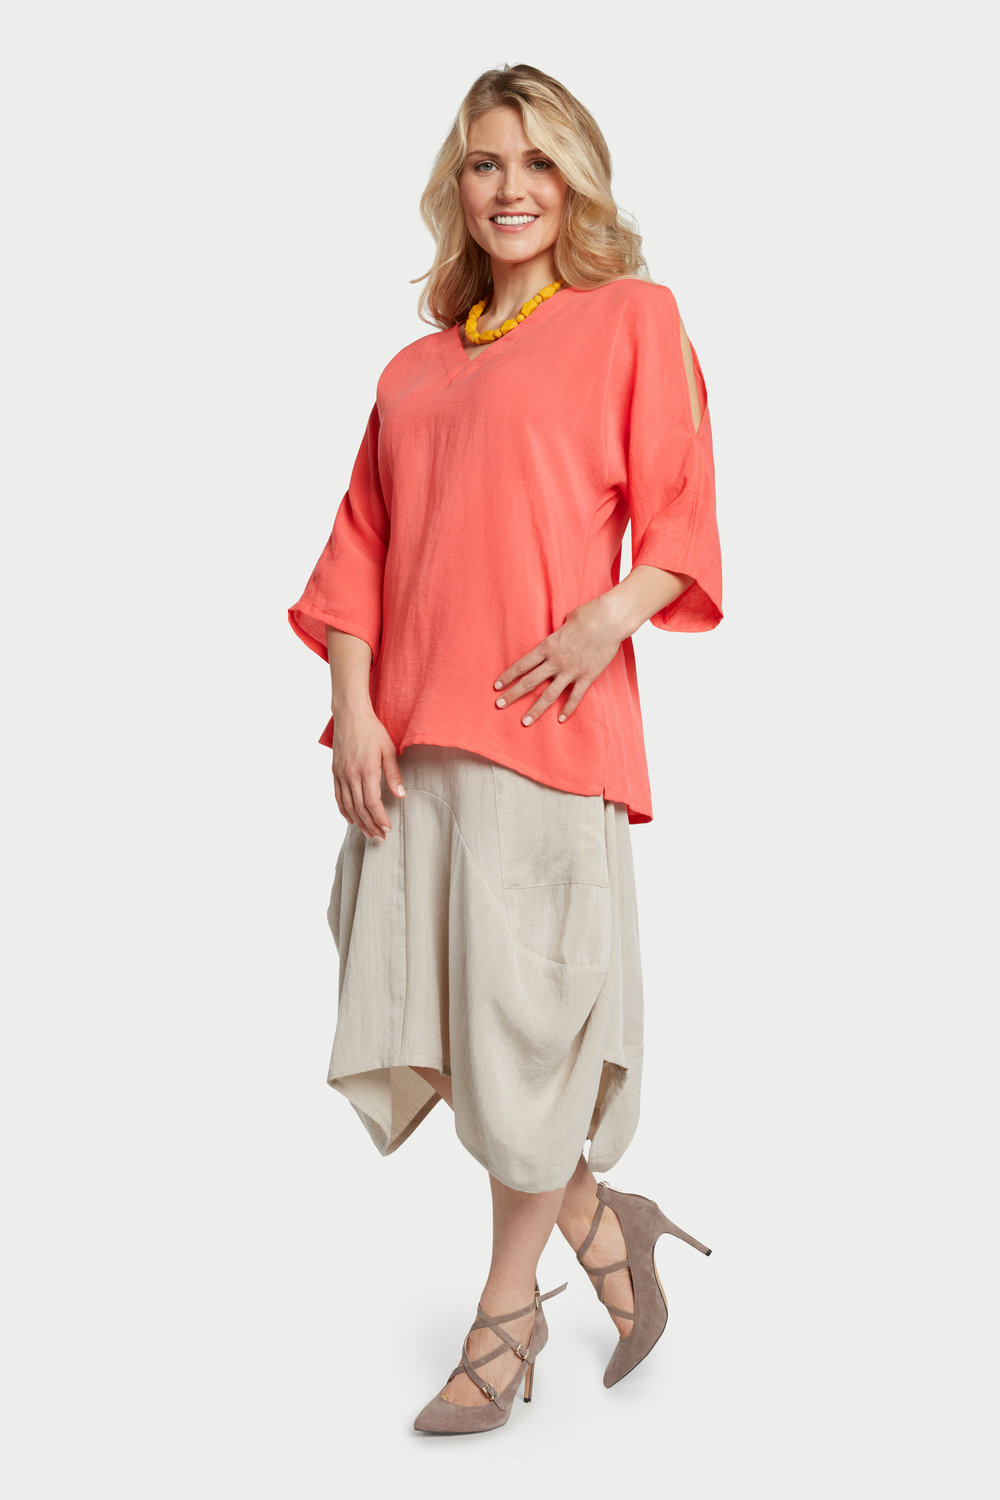 AA254 - Peek-a-Boo Sleeves Pullover    Papaya - CL4385